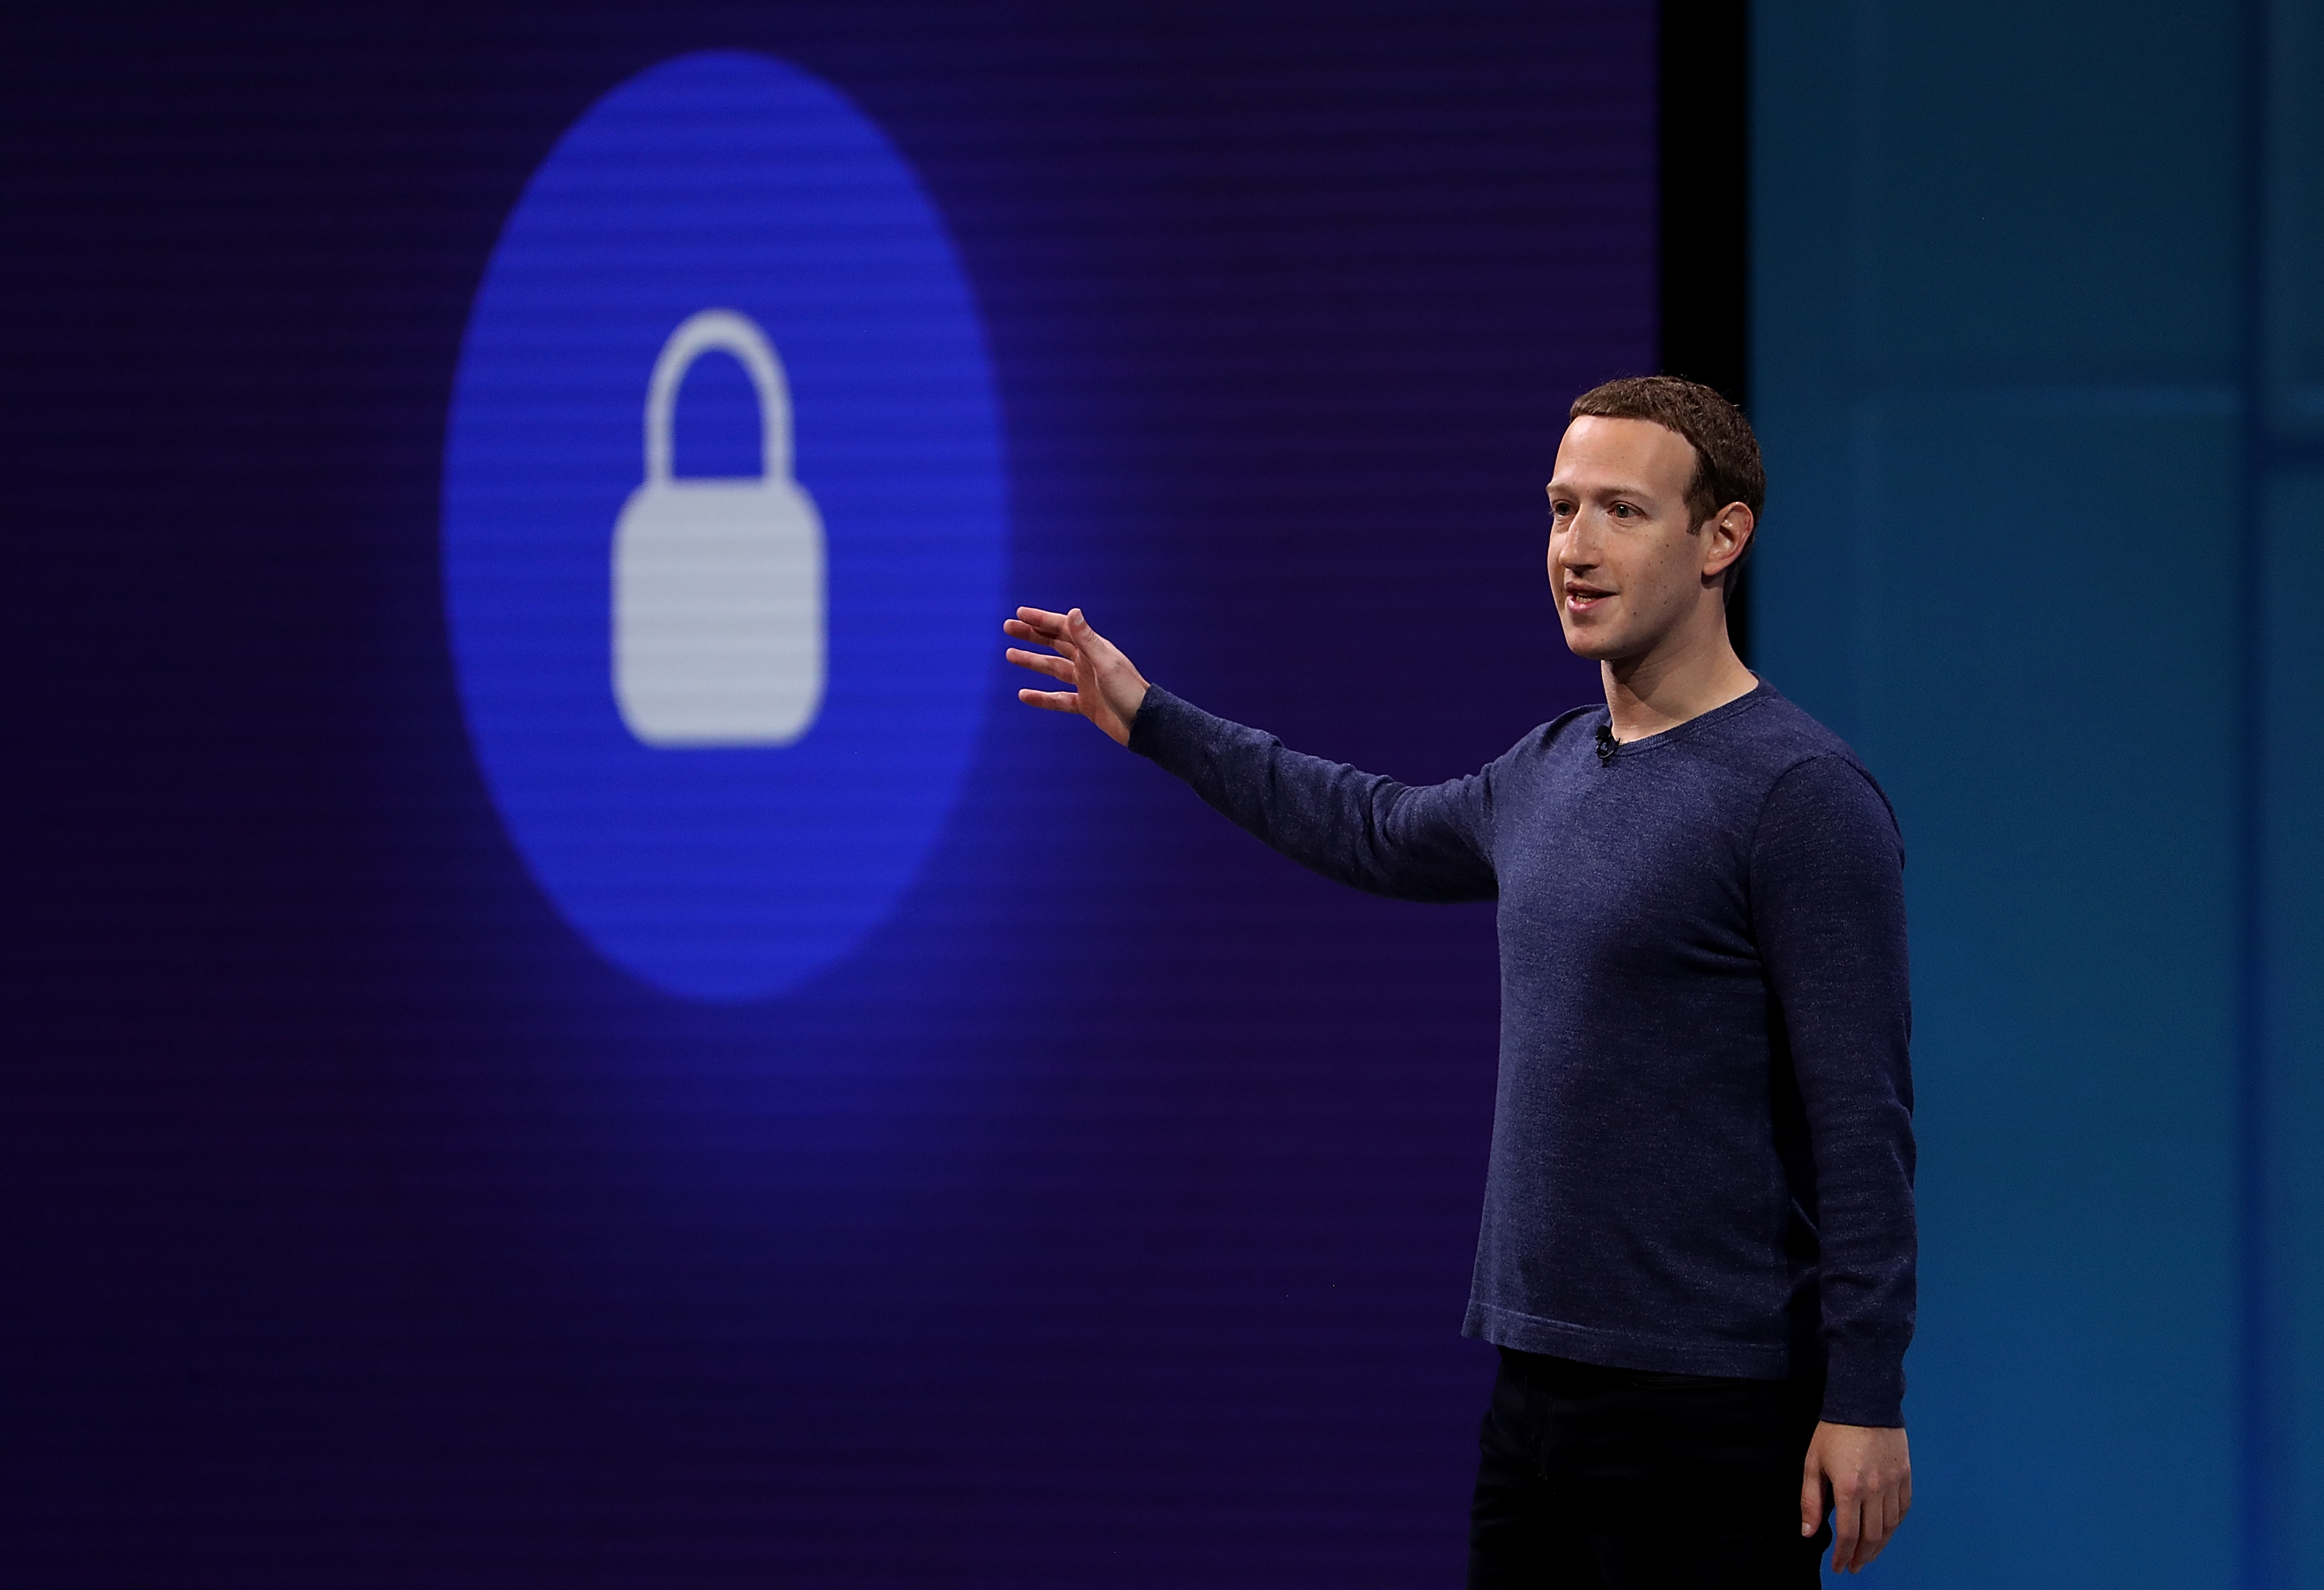 Facebook CEO Mark Zuckerberg onstage gesturing at a picture of a lock.